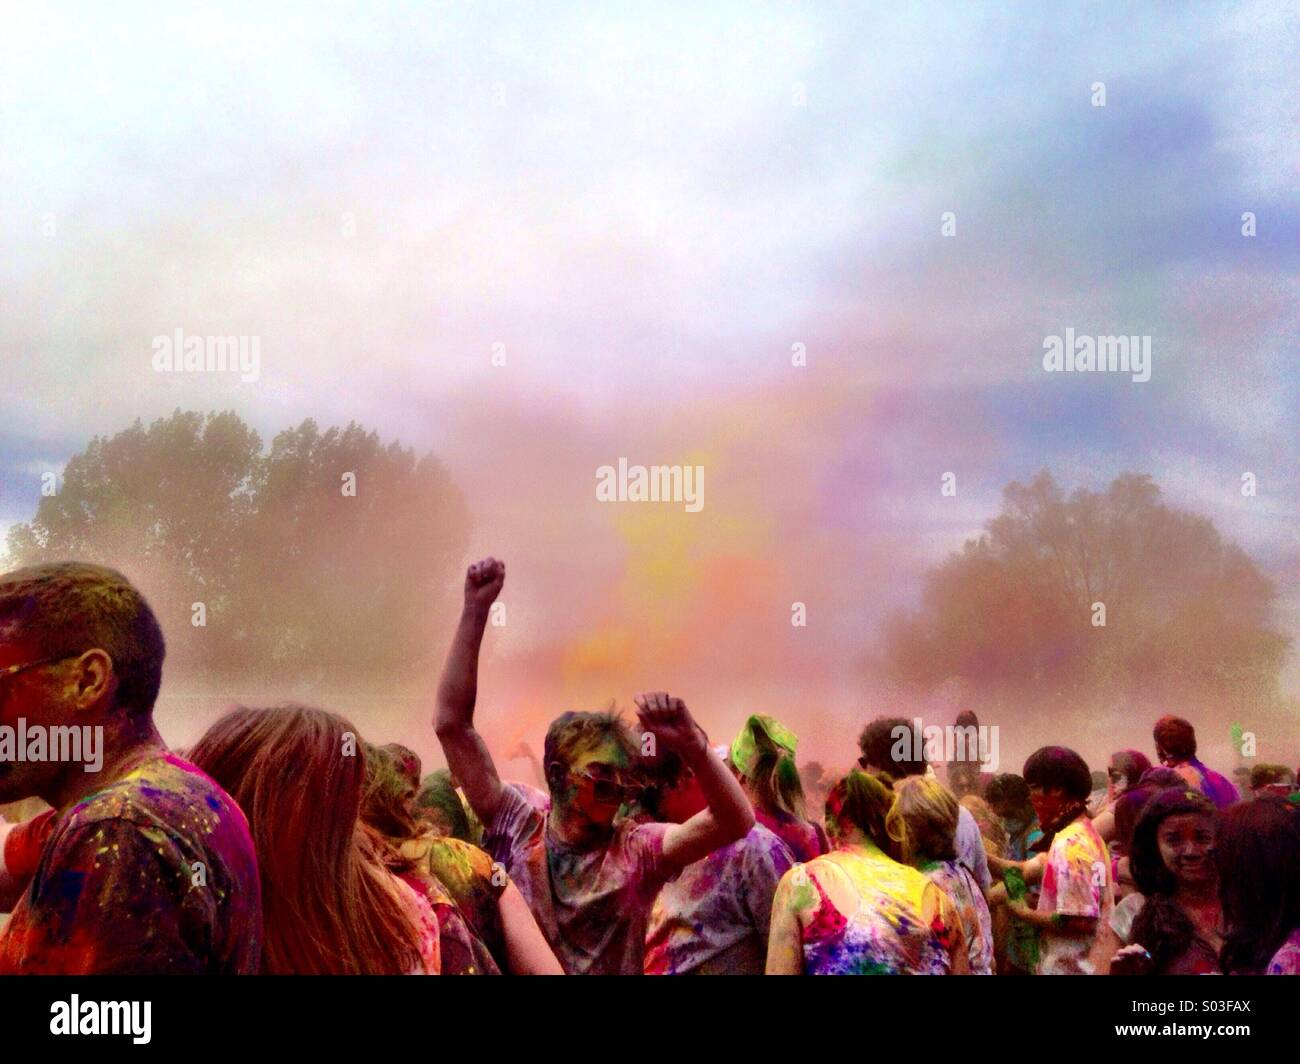 The crowd at the Holi Festival of Colors in Salt Lake City, UT. - Stock Image